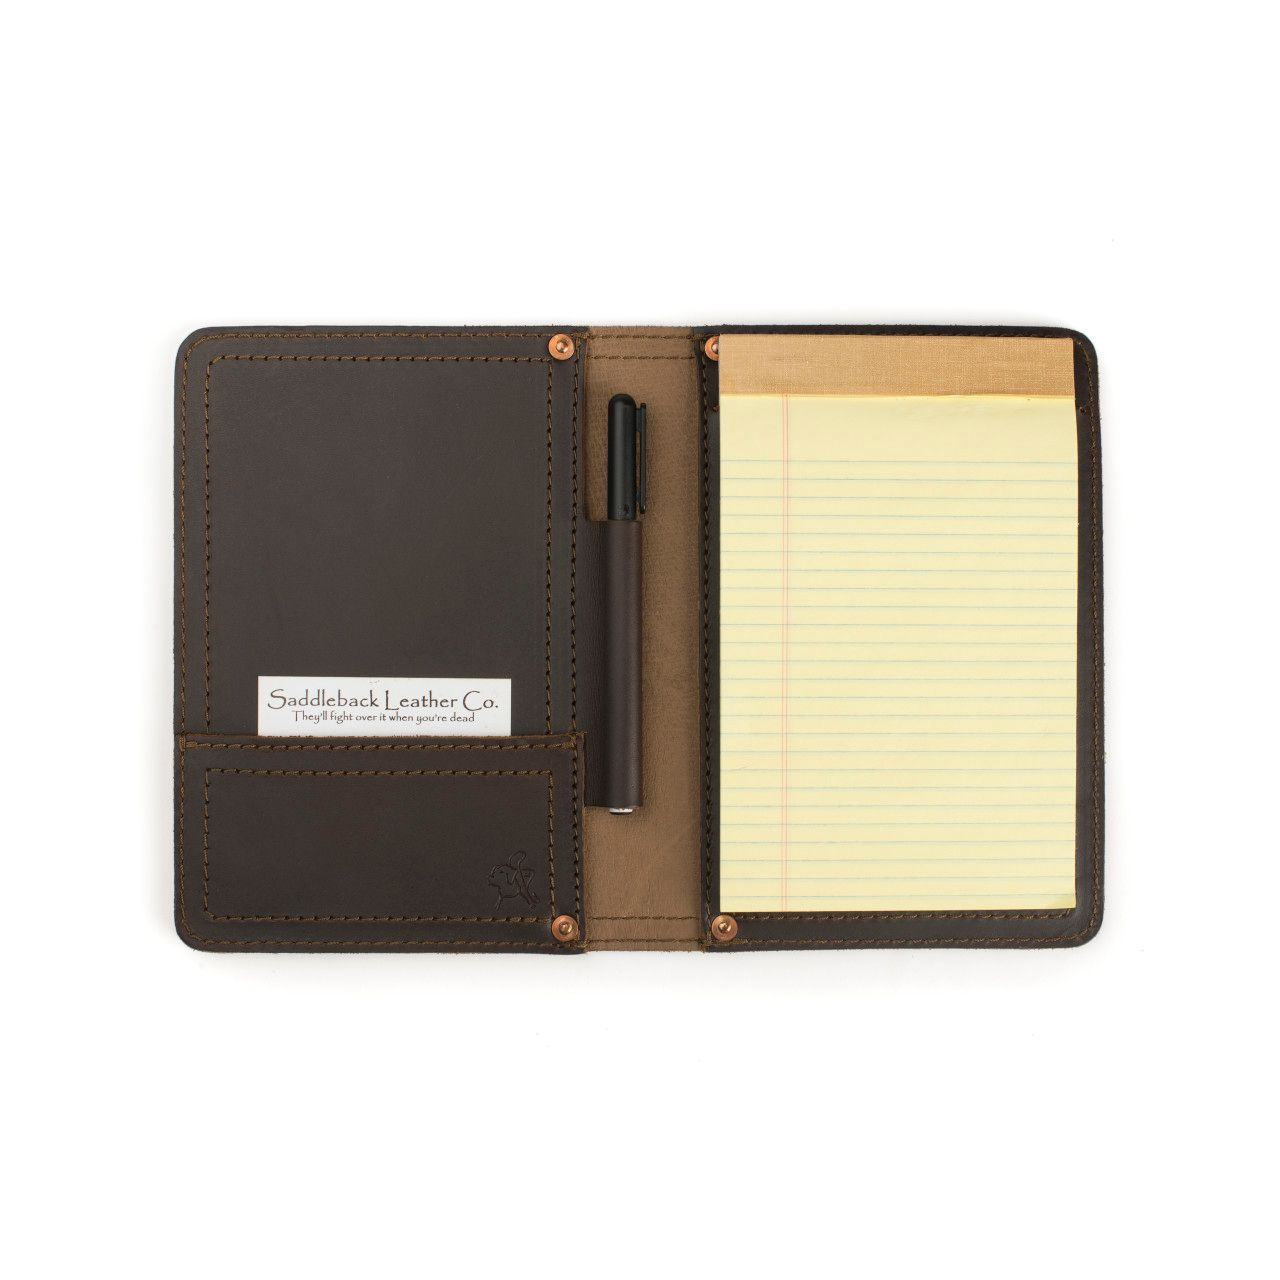 Notepad in leather notepad cover small in dark coffee brown leather